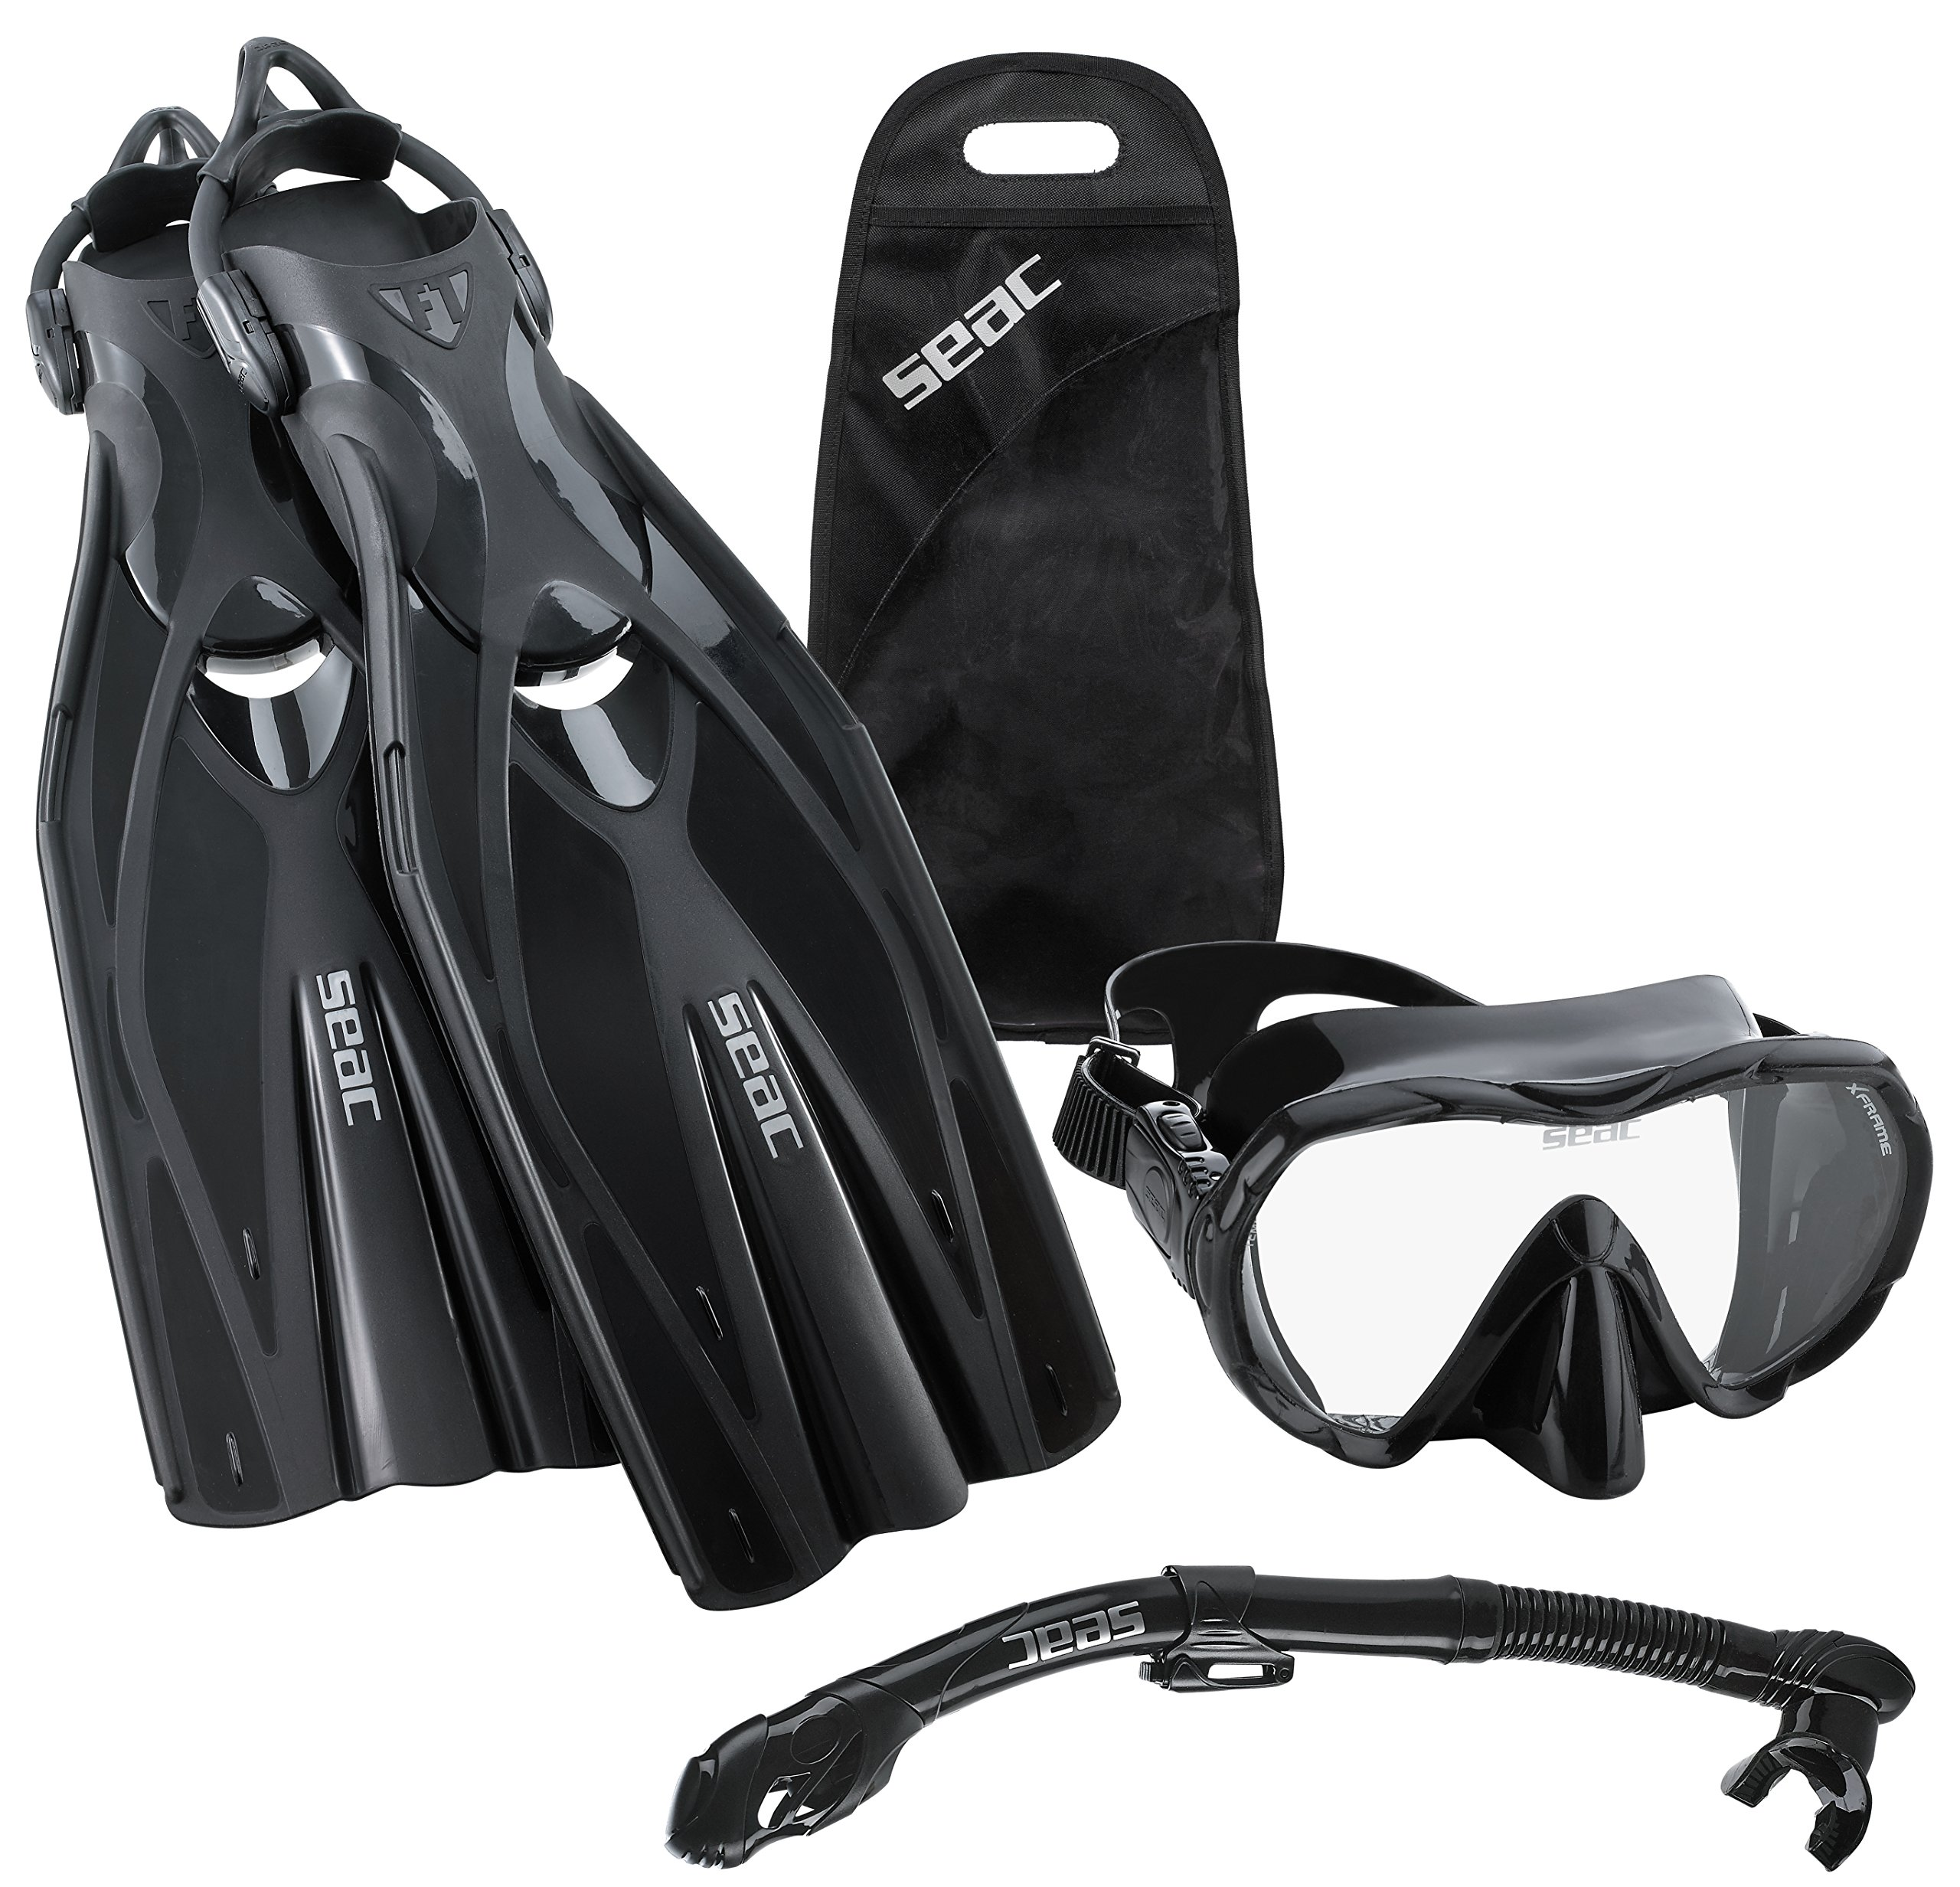 SEAC Frameless Scuba Mask Fin Snorkel Set, Black, Large/X-Large by SEAC (Image #1)